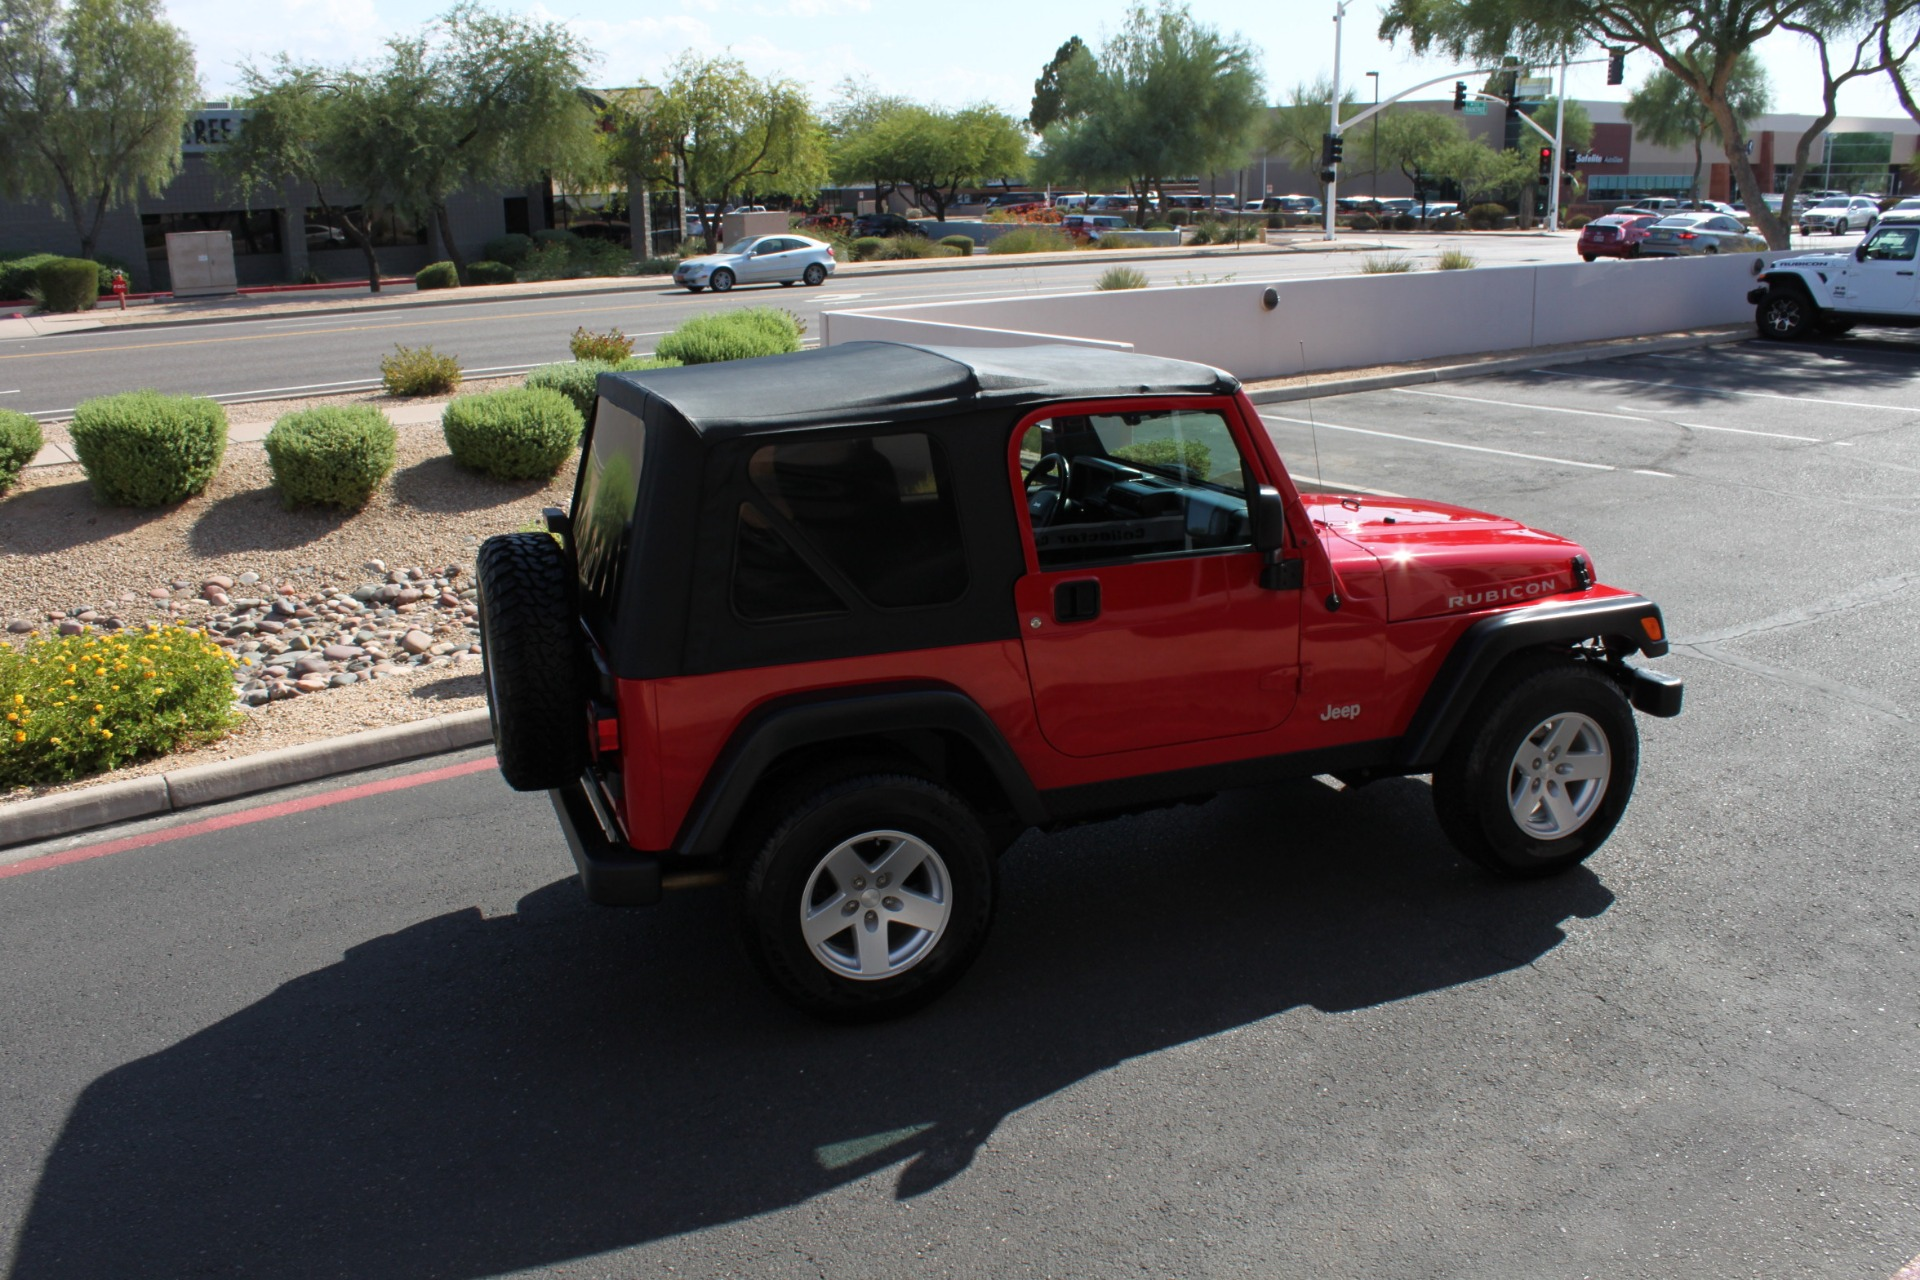 Used-2006-Jeep-Wrangler-Rubicon-Lexus